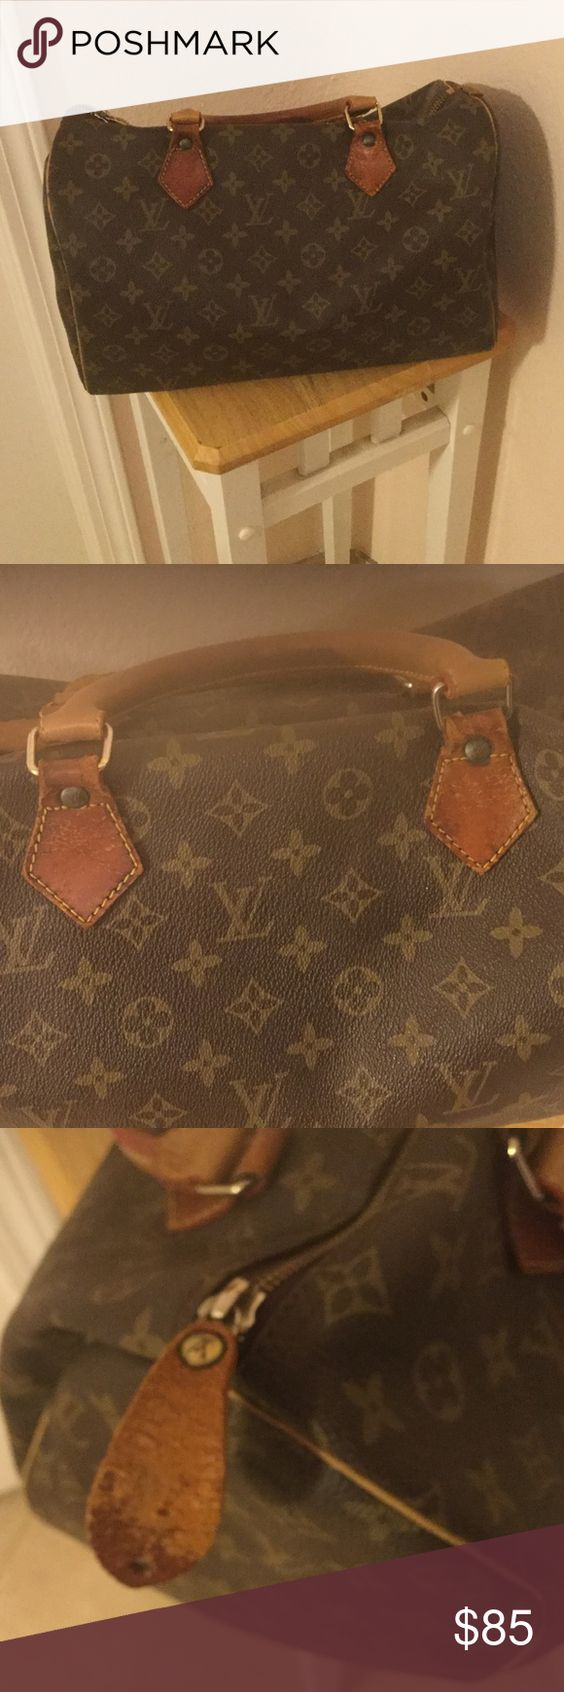 LV fashion handbag Not authentic, handles however are leather,  pretty! Handles are lighter than darkened patina on part of leather underneath because they were replaced. Bags Satchels